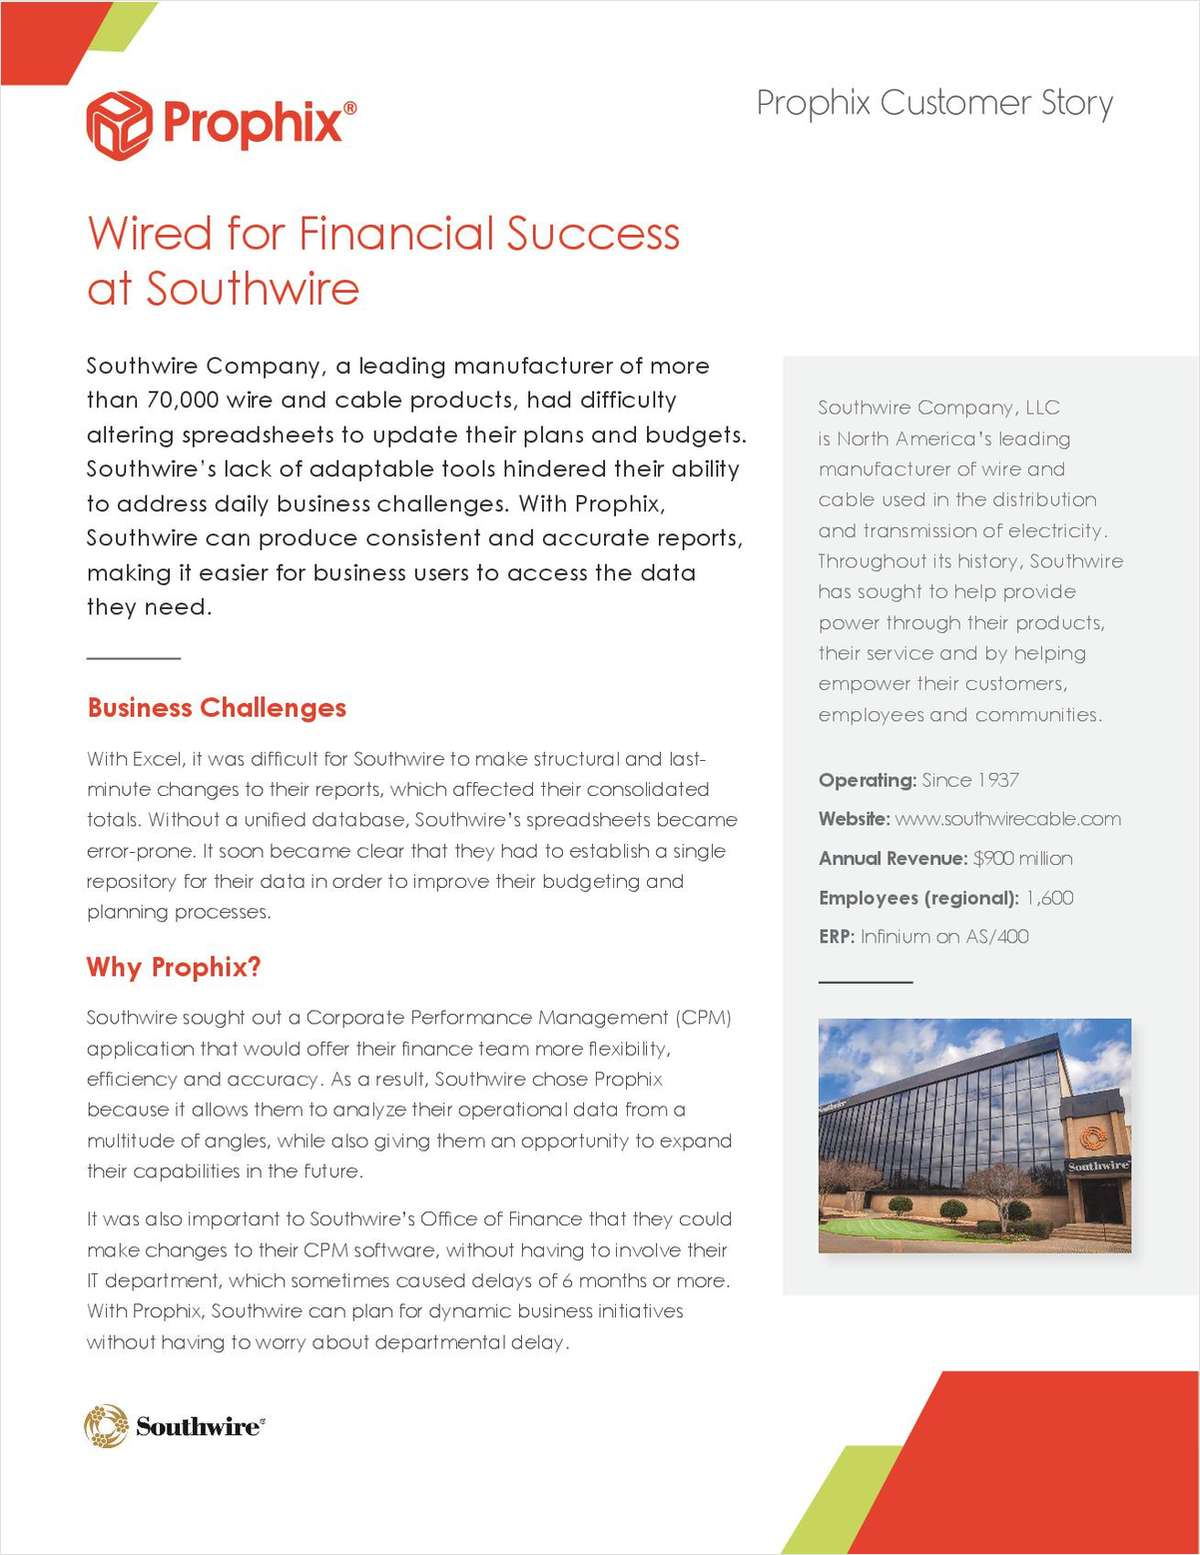 Wired for Financial Success at Southwire